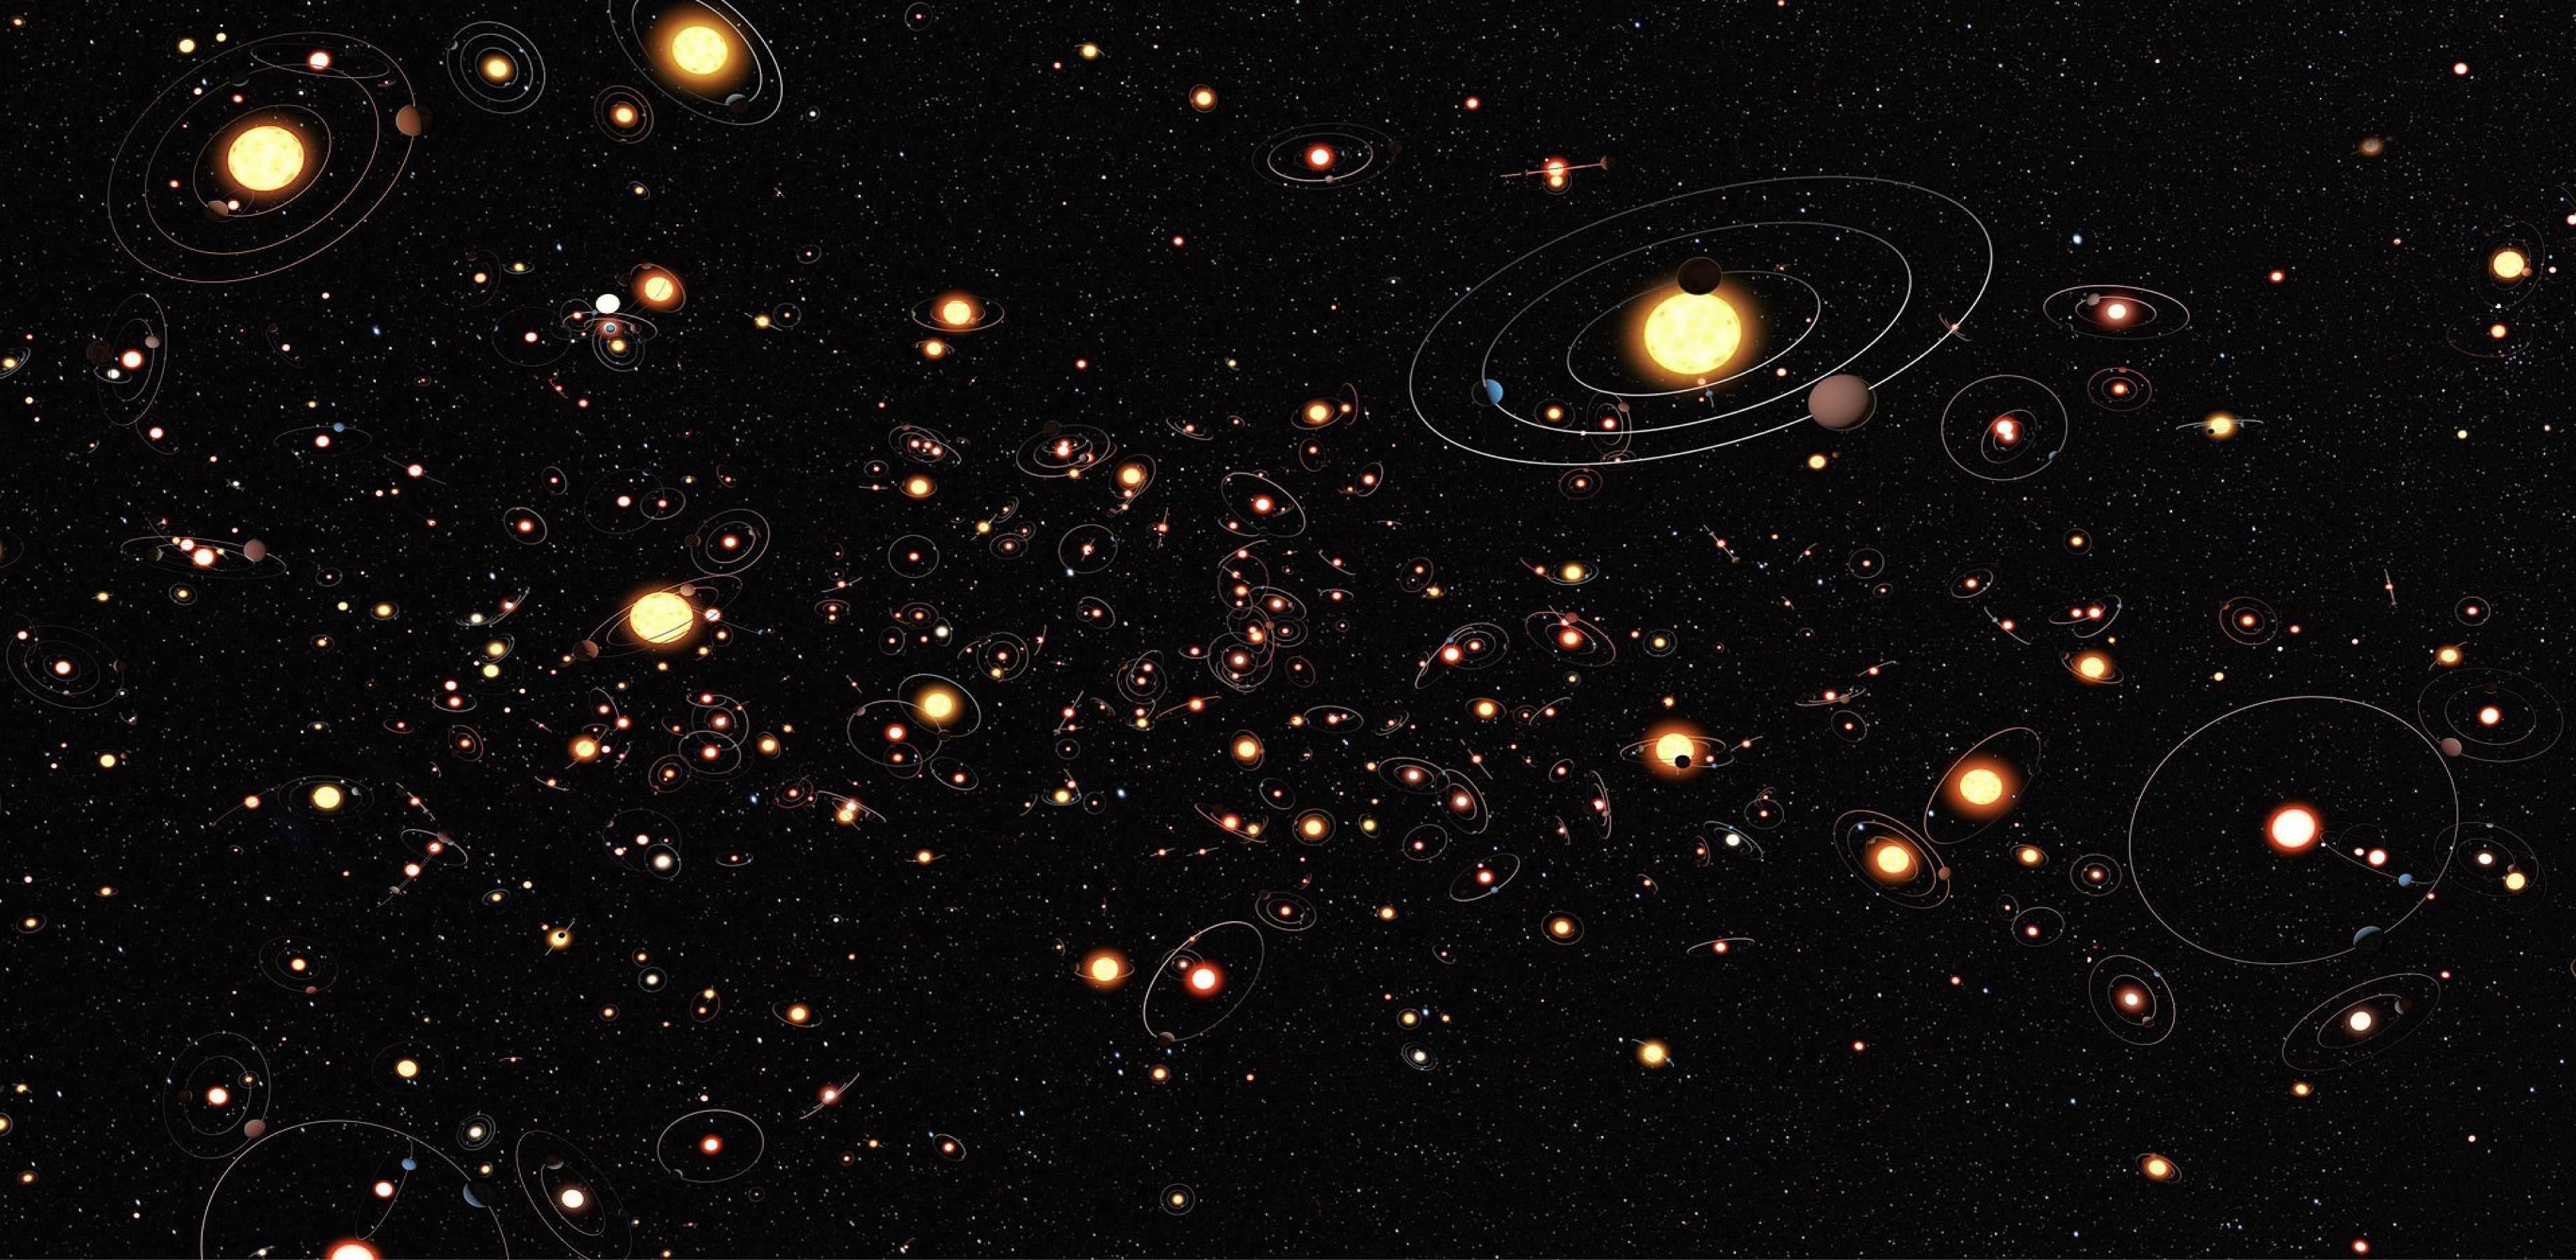 Artist's impression of planets and their orbits